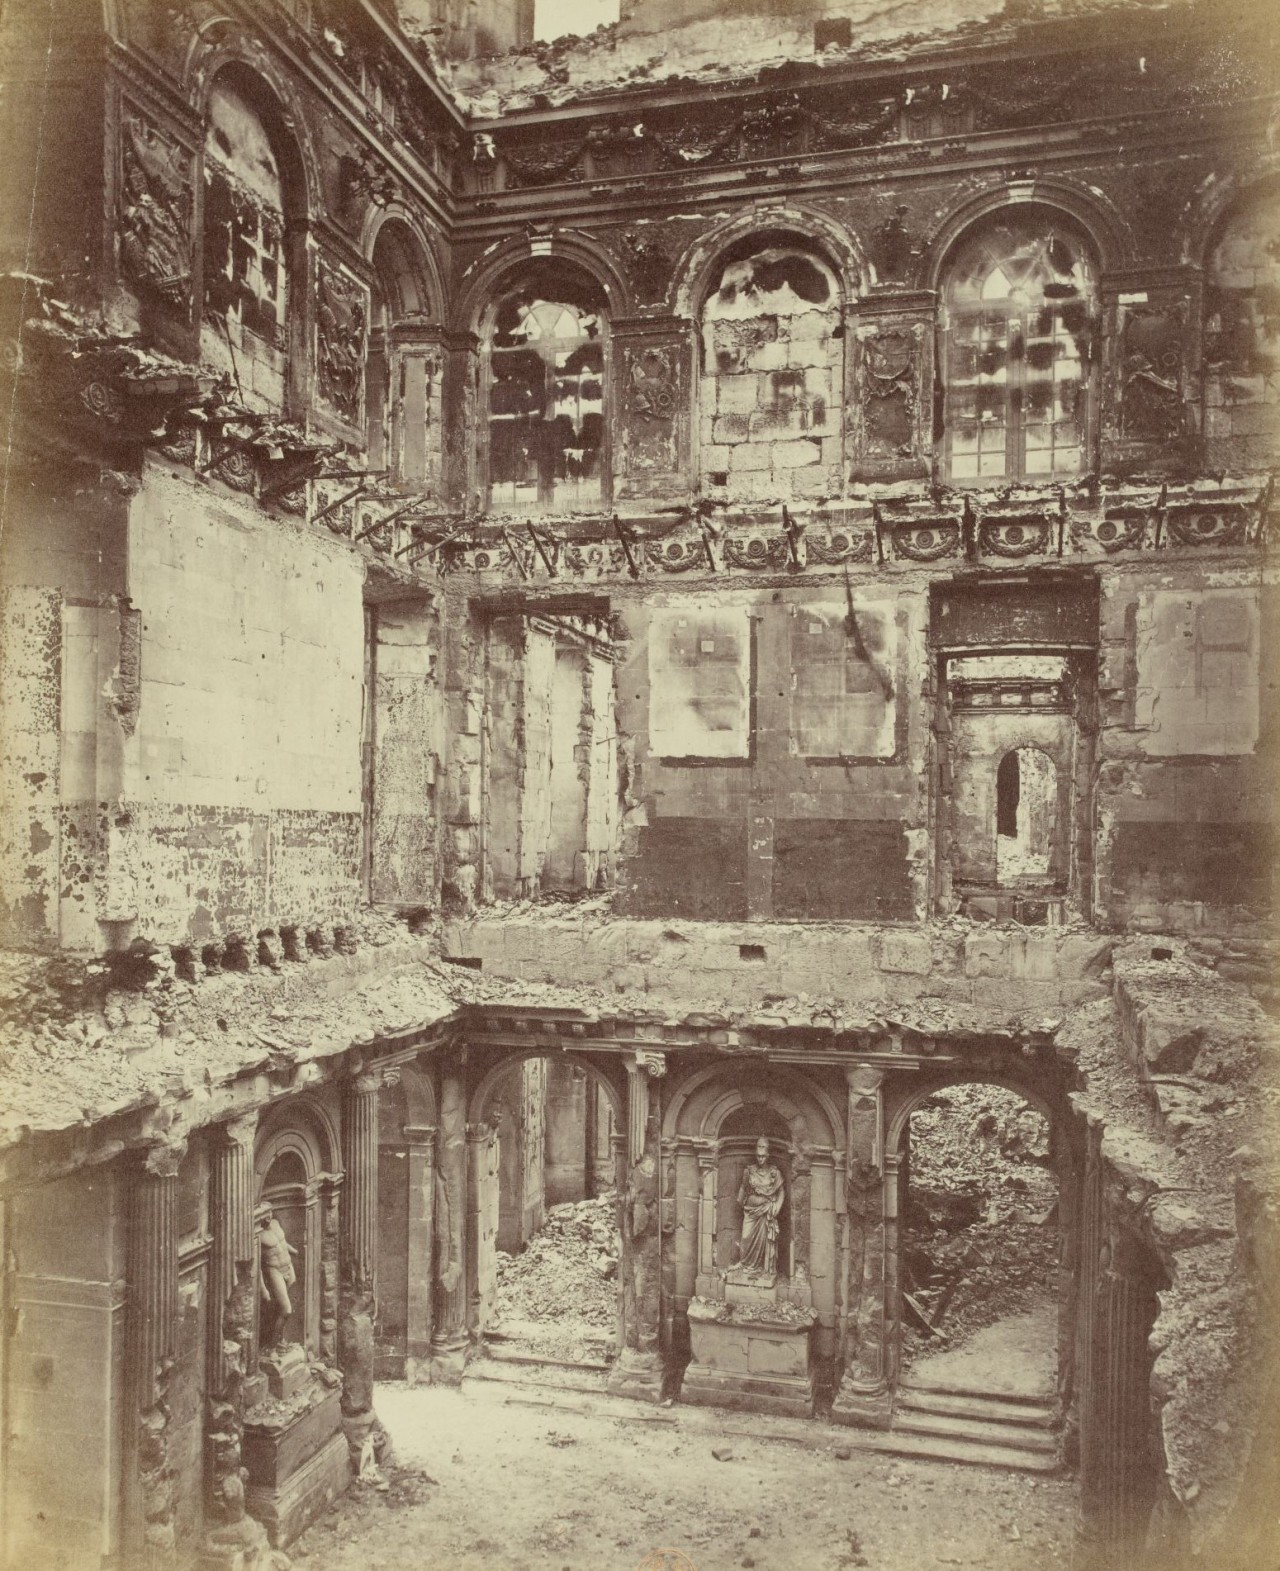 Luxor Chartres Tuileries Palace Burned Down In 1871 It Was A Royal